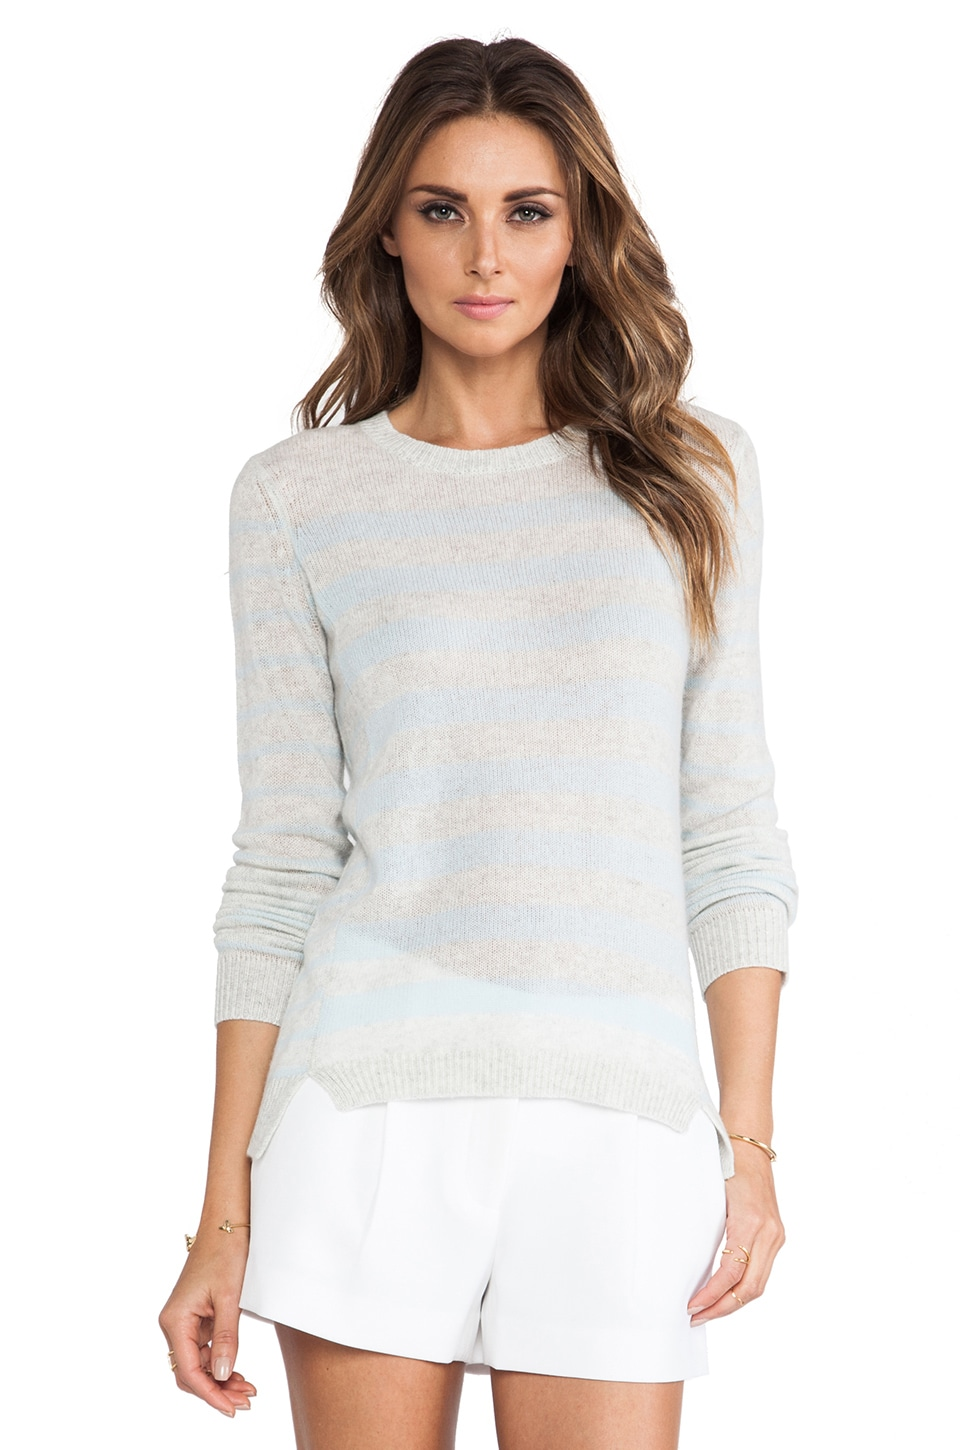 Rebecca Taylor Cashmere Striped Sweater in Robbin's Egg Combo